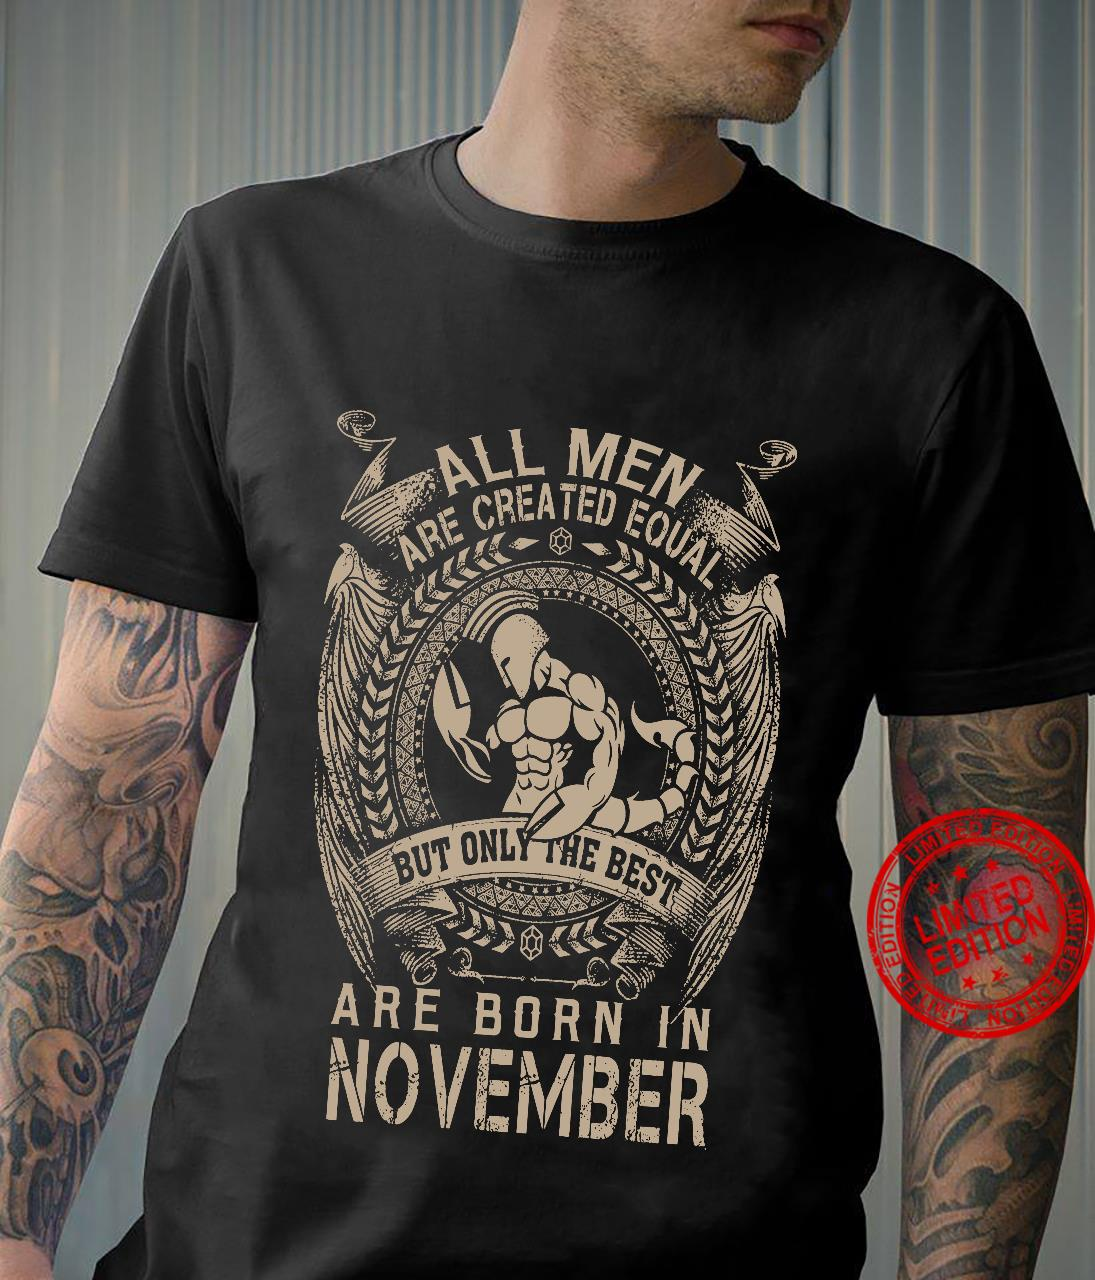 All Men Are Created Equal But Only The Best Are Born In November shirt